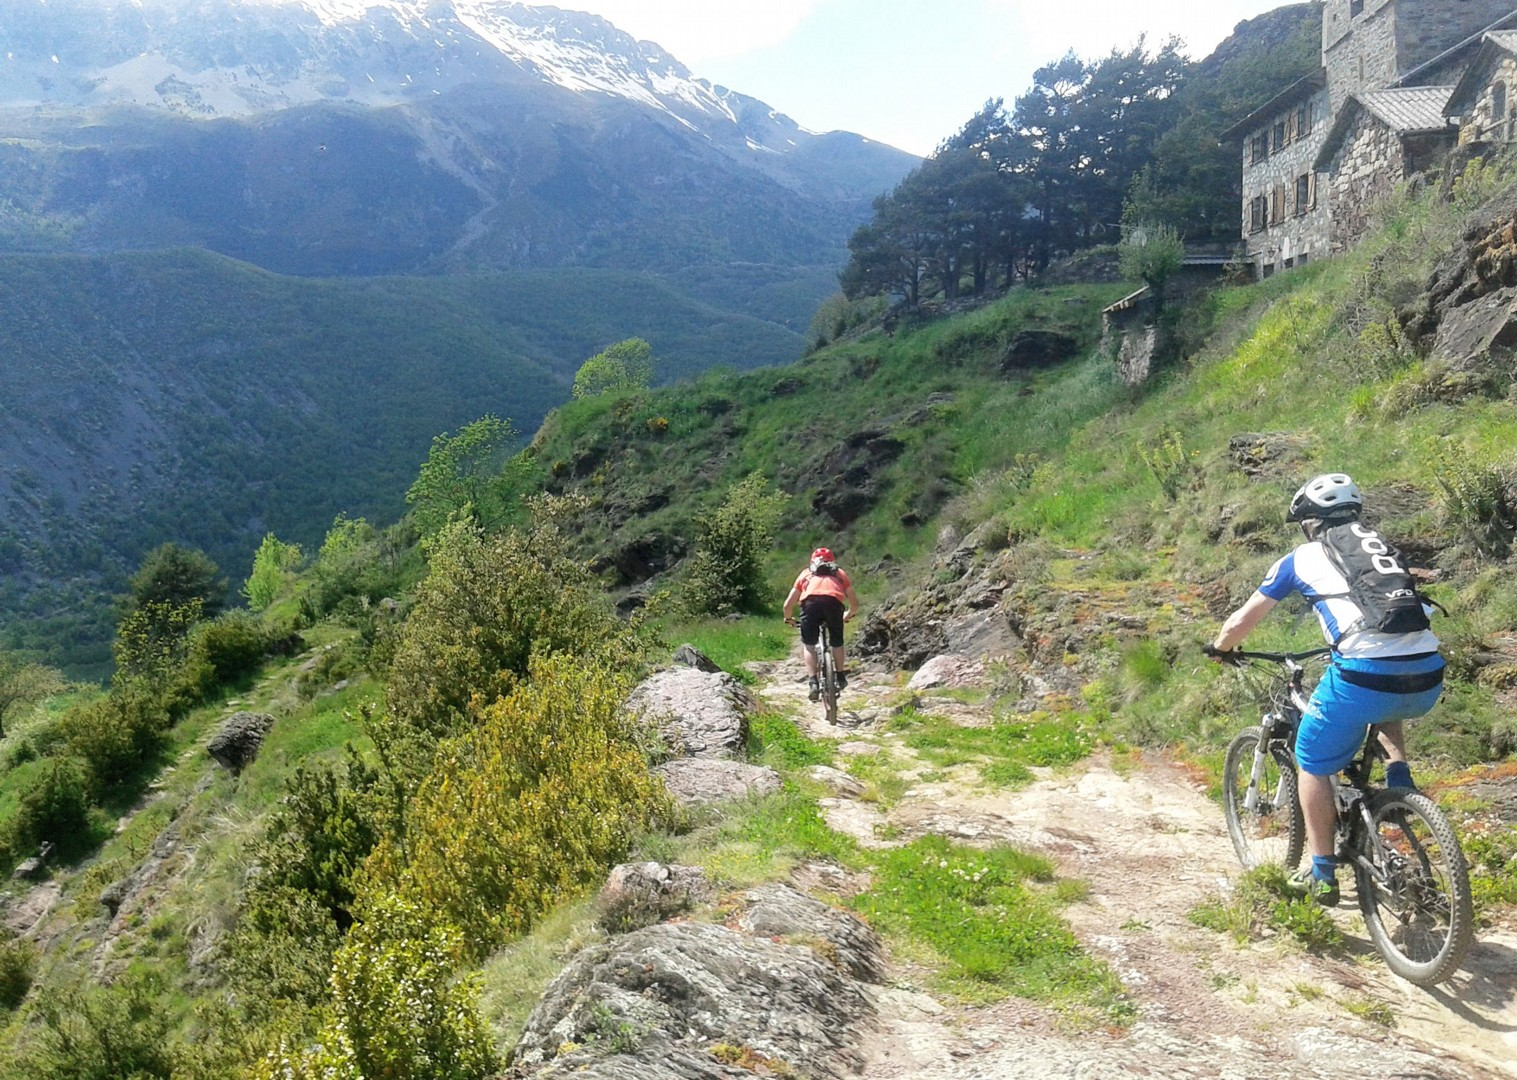 20160516_161806.jpg - Spain - Pyrenees Enduro - Guided Mountain Bike Holiday - Mountain Biking